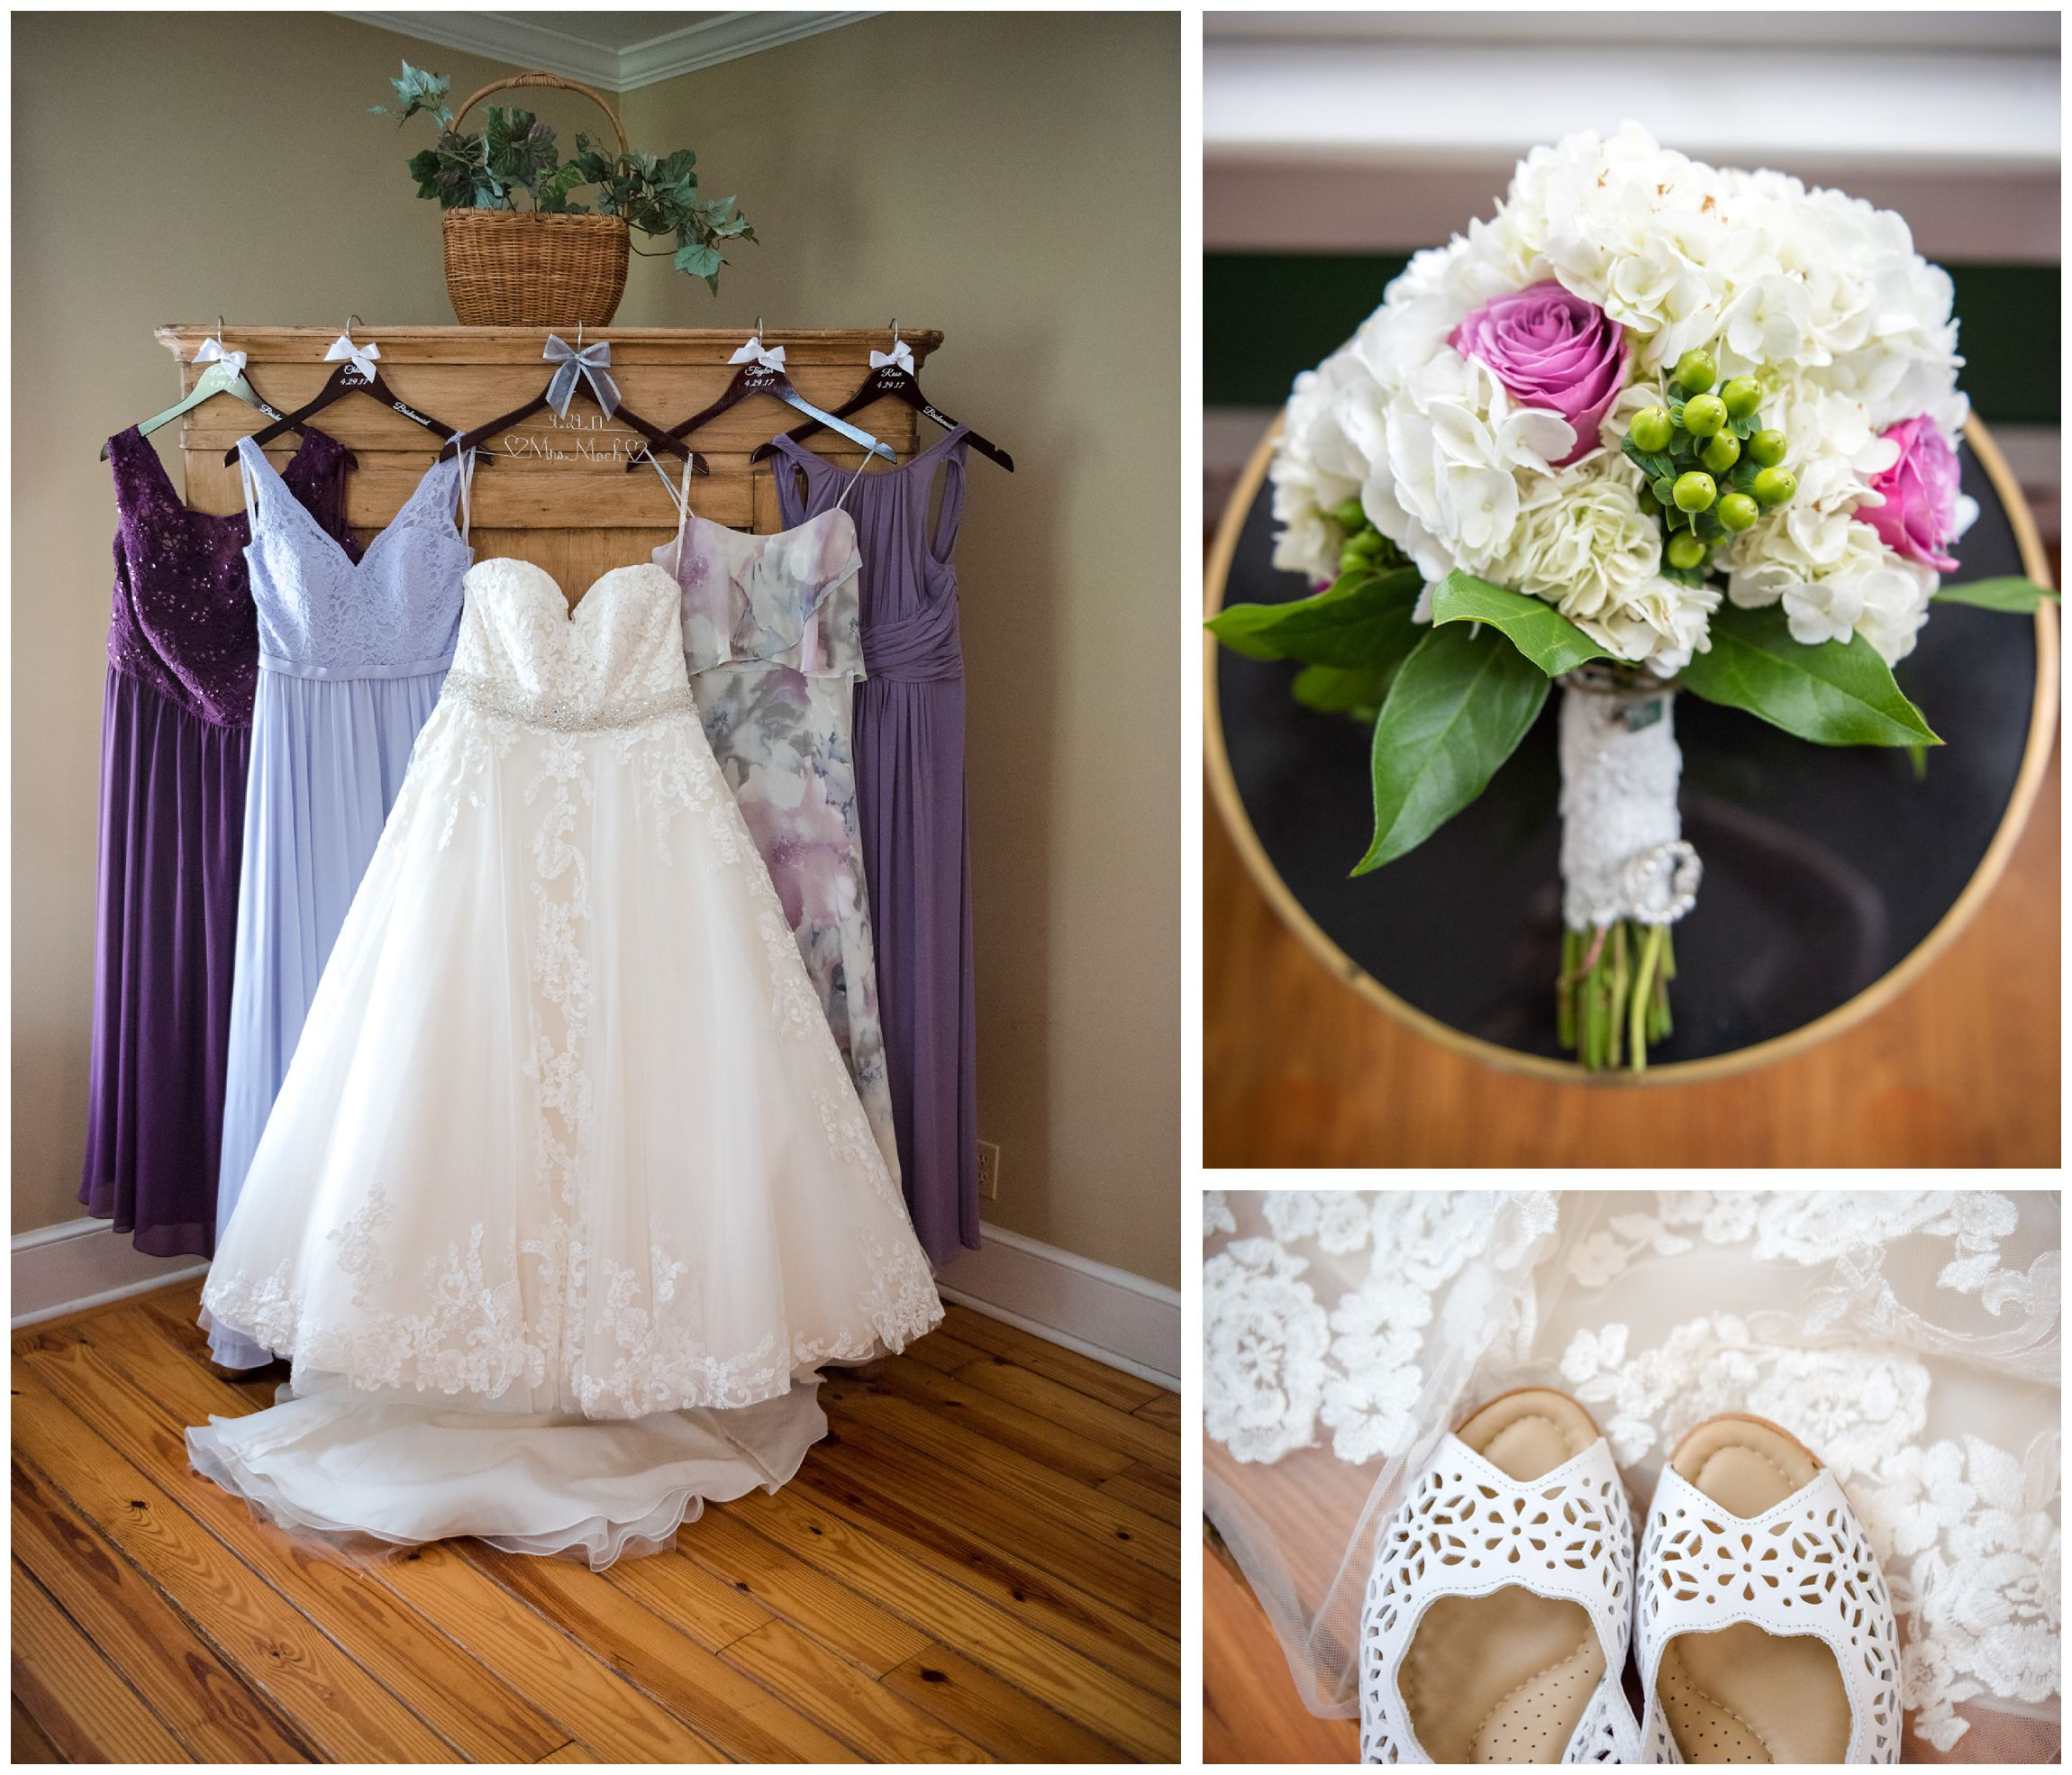 rustic wedding details including bride's gown and bridesmaid dresses, bouquet and shoes